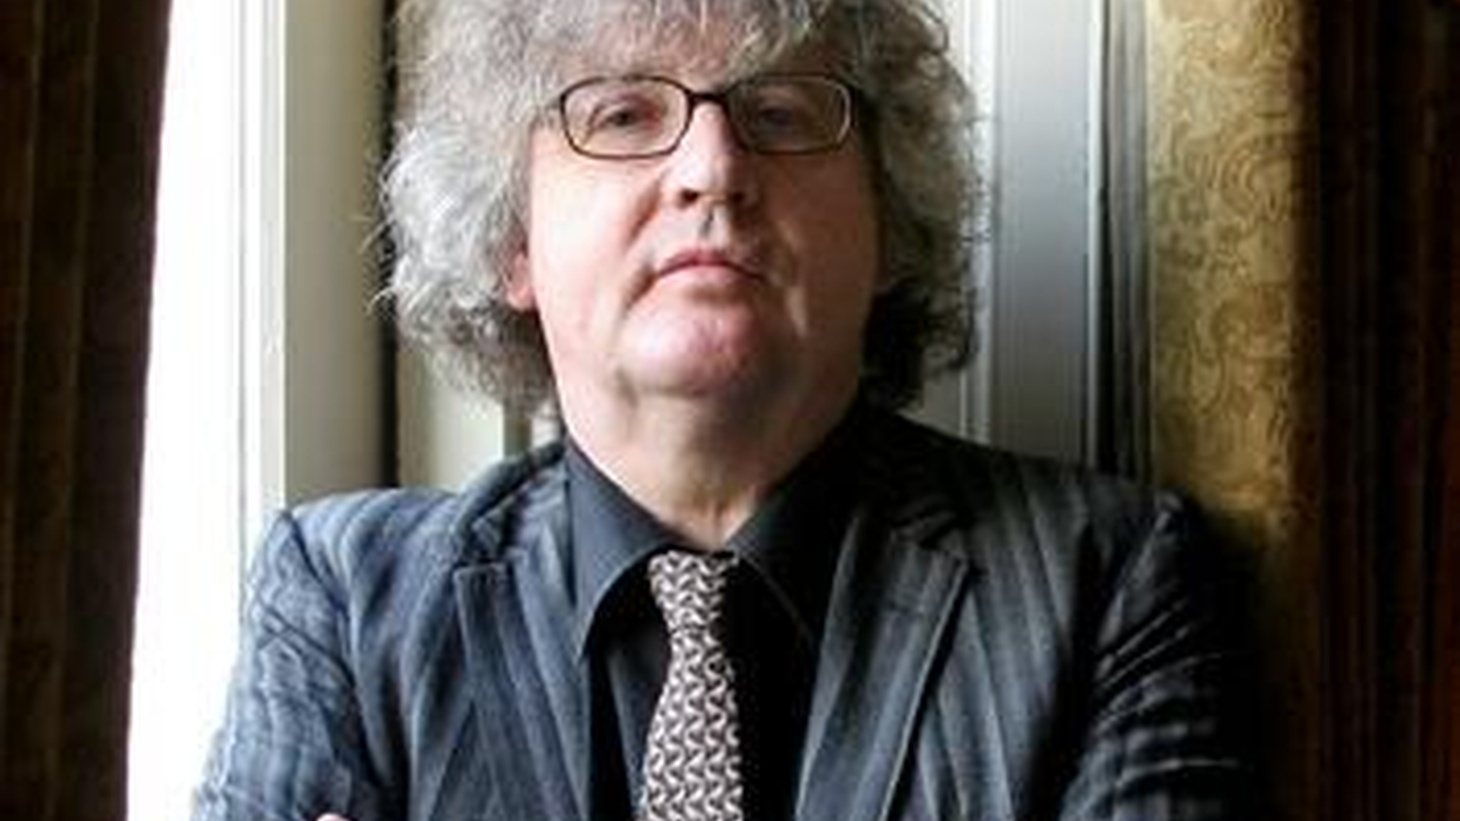 First, Sparks on Bookworm's new theme songs. Then poet Paul Muldoon (Maggot, from Farrar, Straus & Giroux) on how writing poems differs from writing song lyrics..